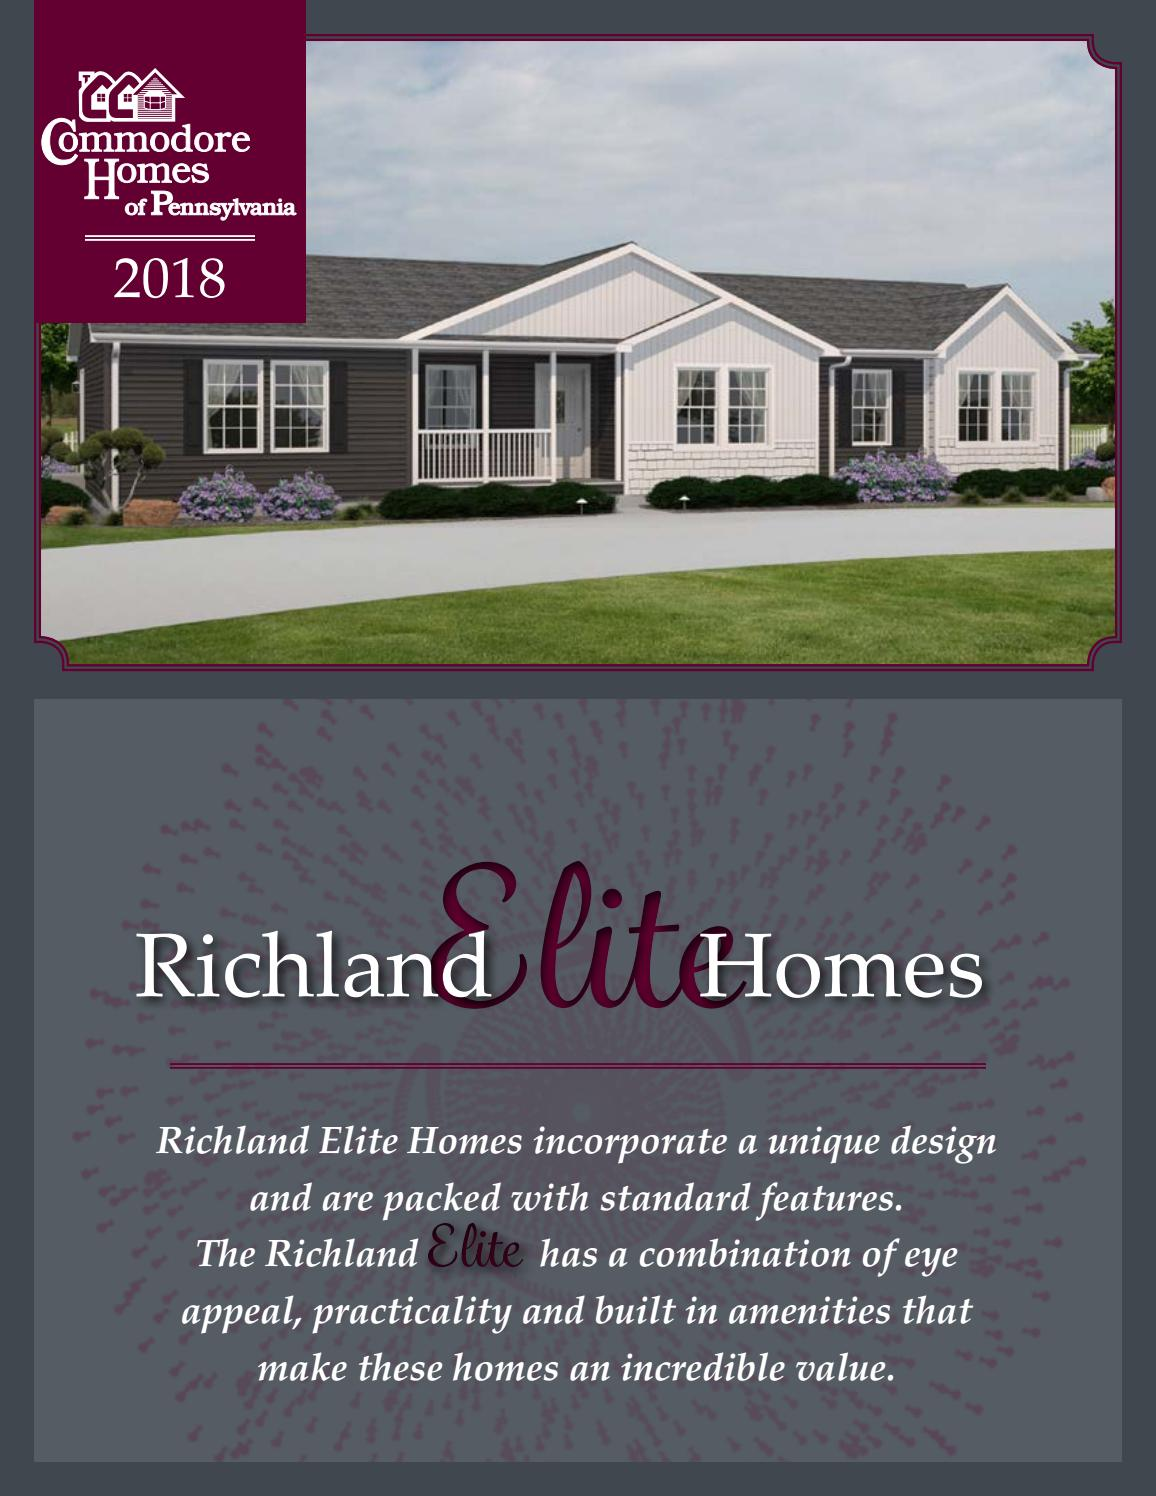 hight resolution of commodore homes of pennsylvania richland elite 2018 by the commodore corporation issuu